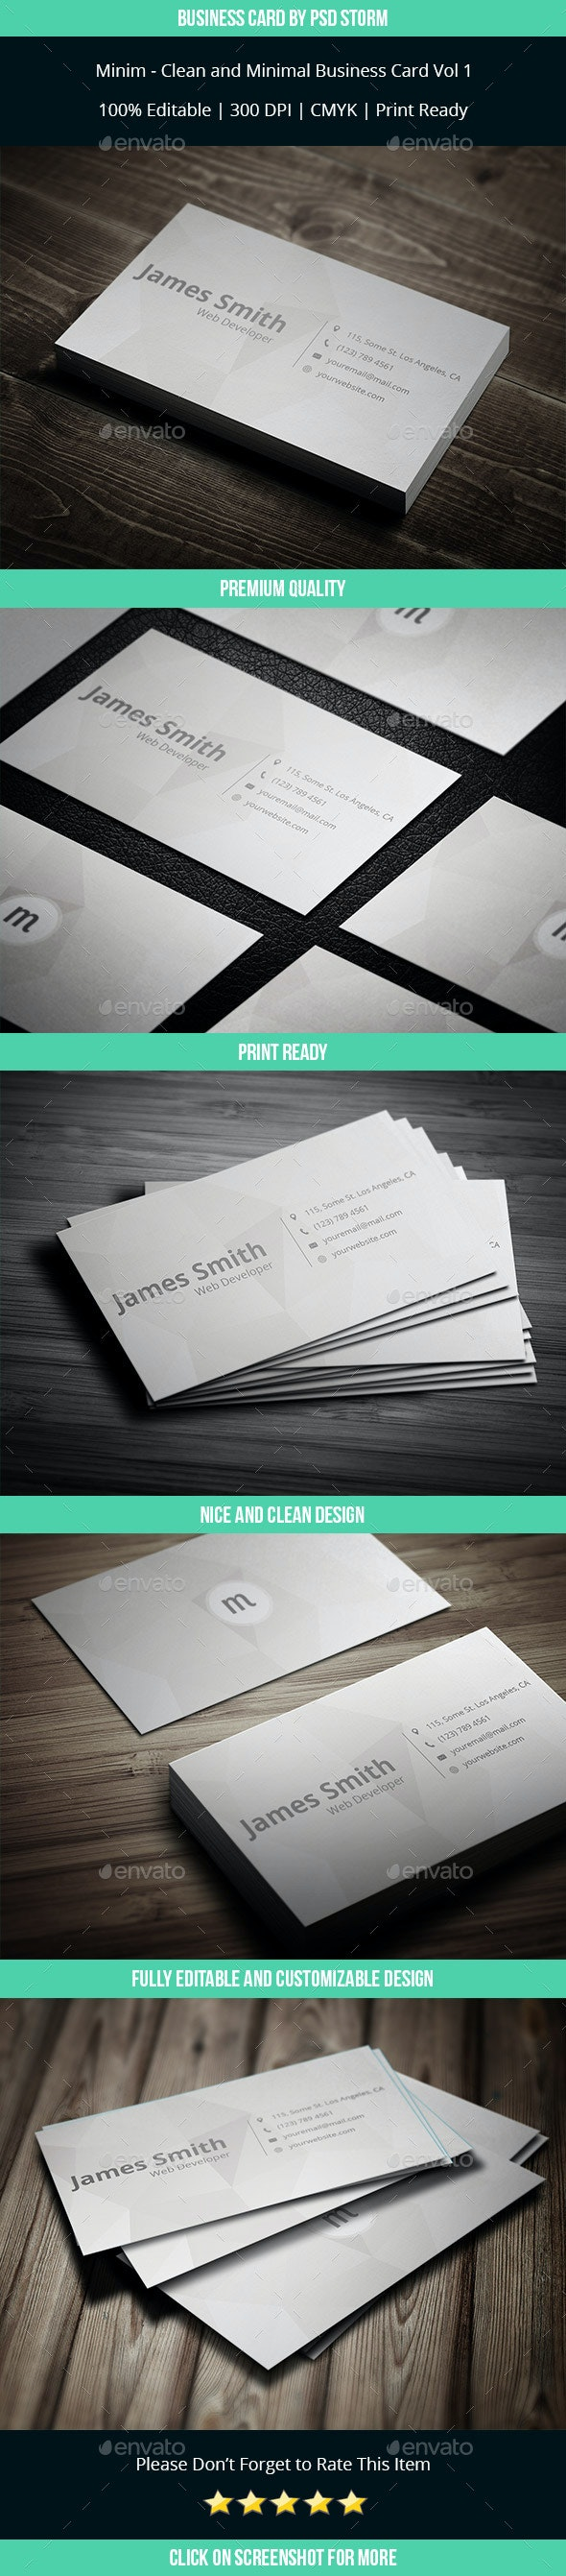 Minim - Clean and Minimal Business Card Template - Corporate Business Cards